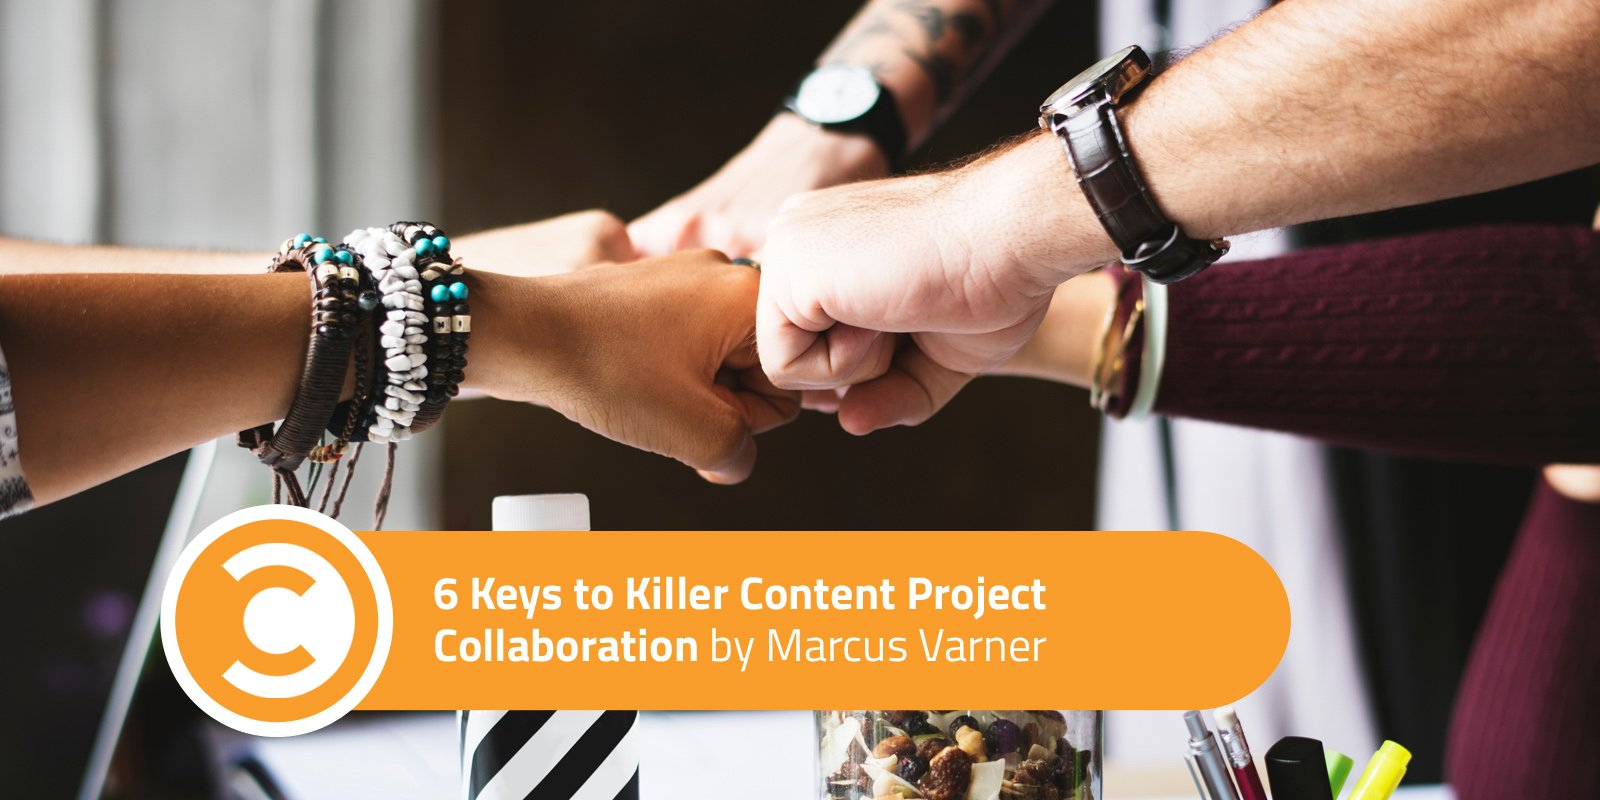 6 Keys to Killer Content Project Collaboration